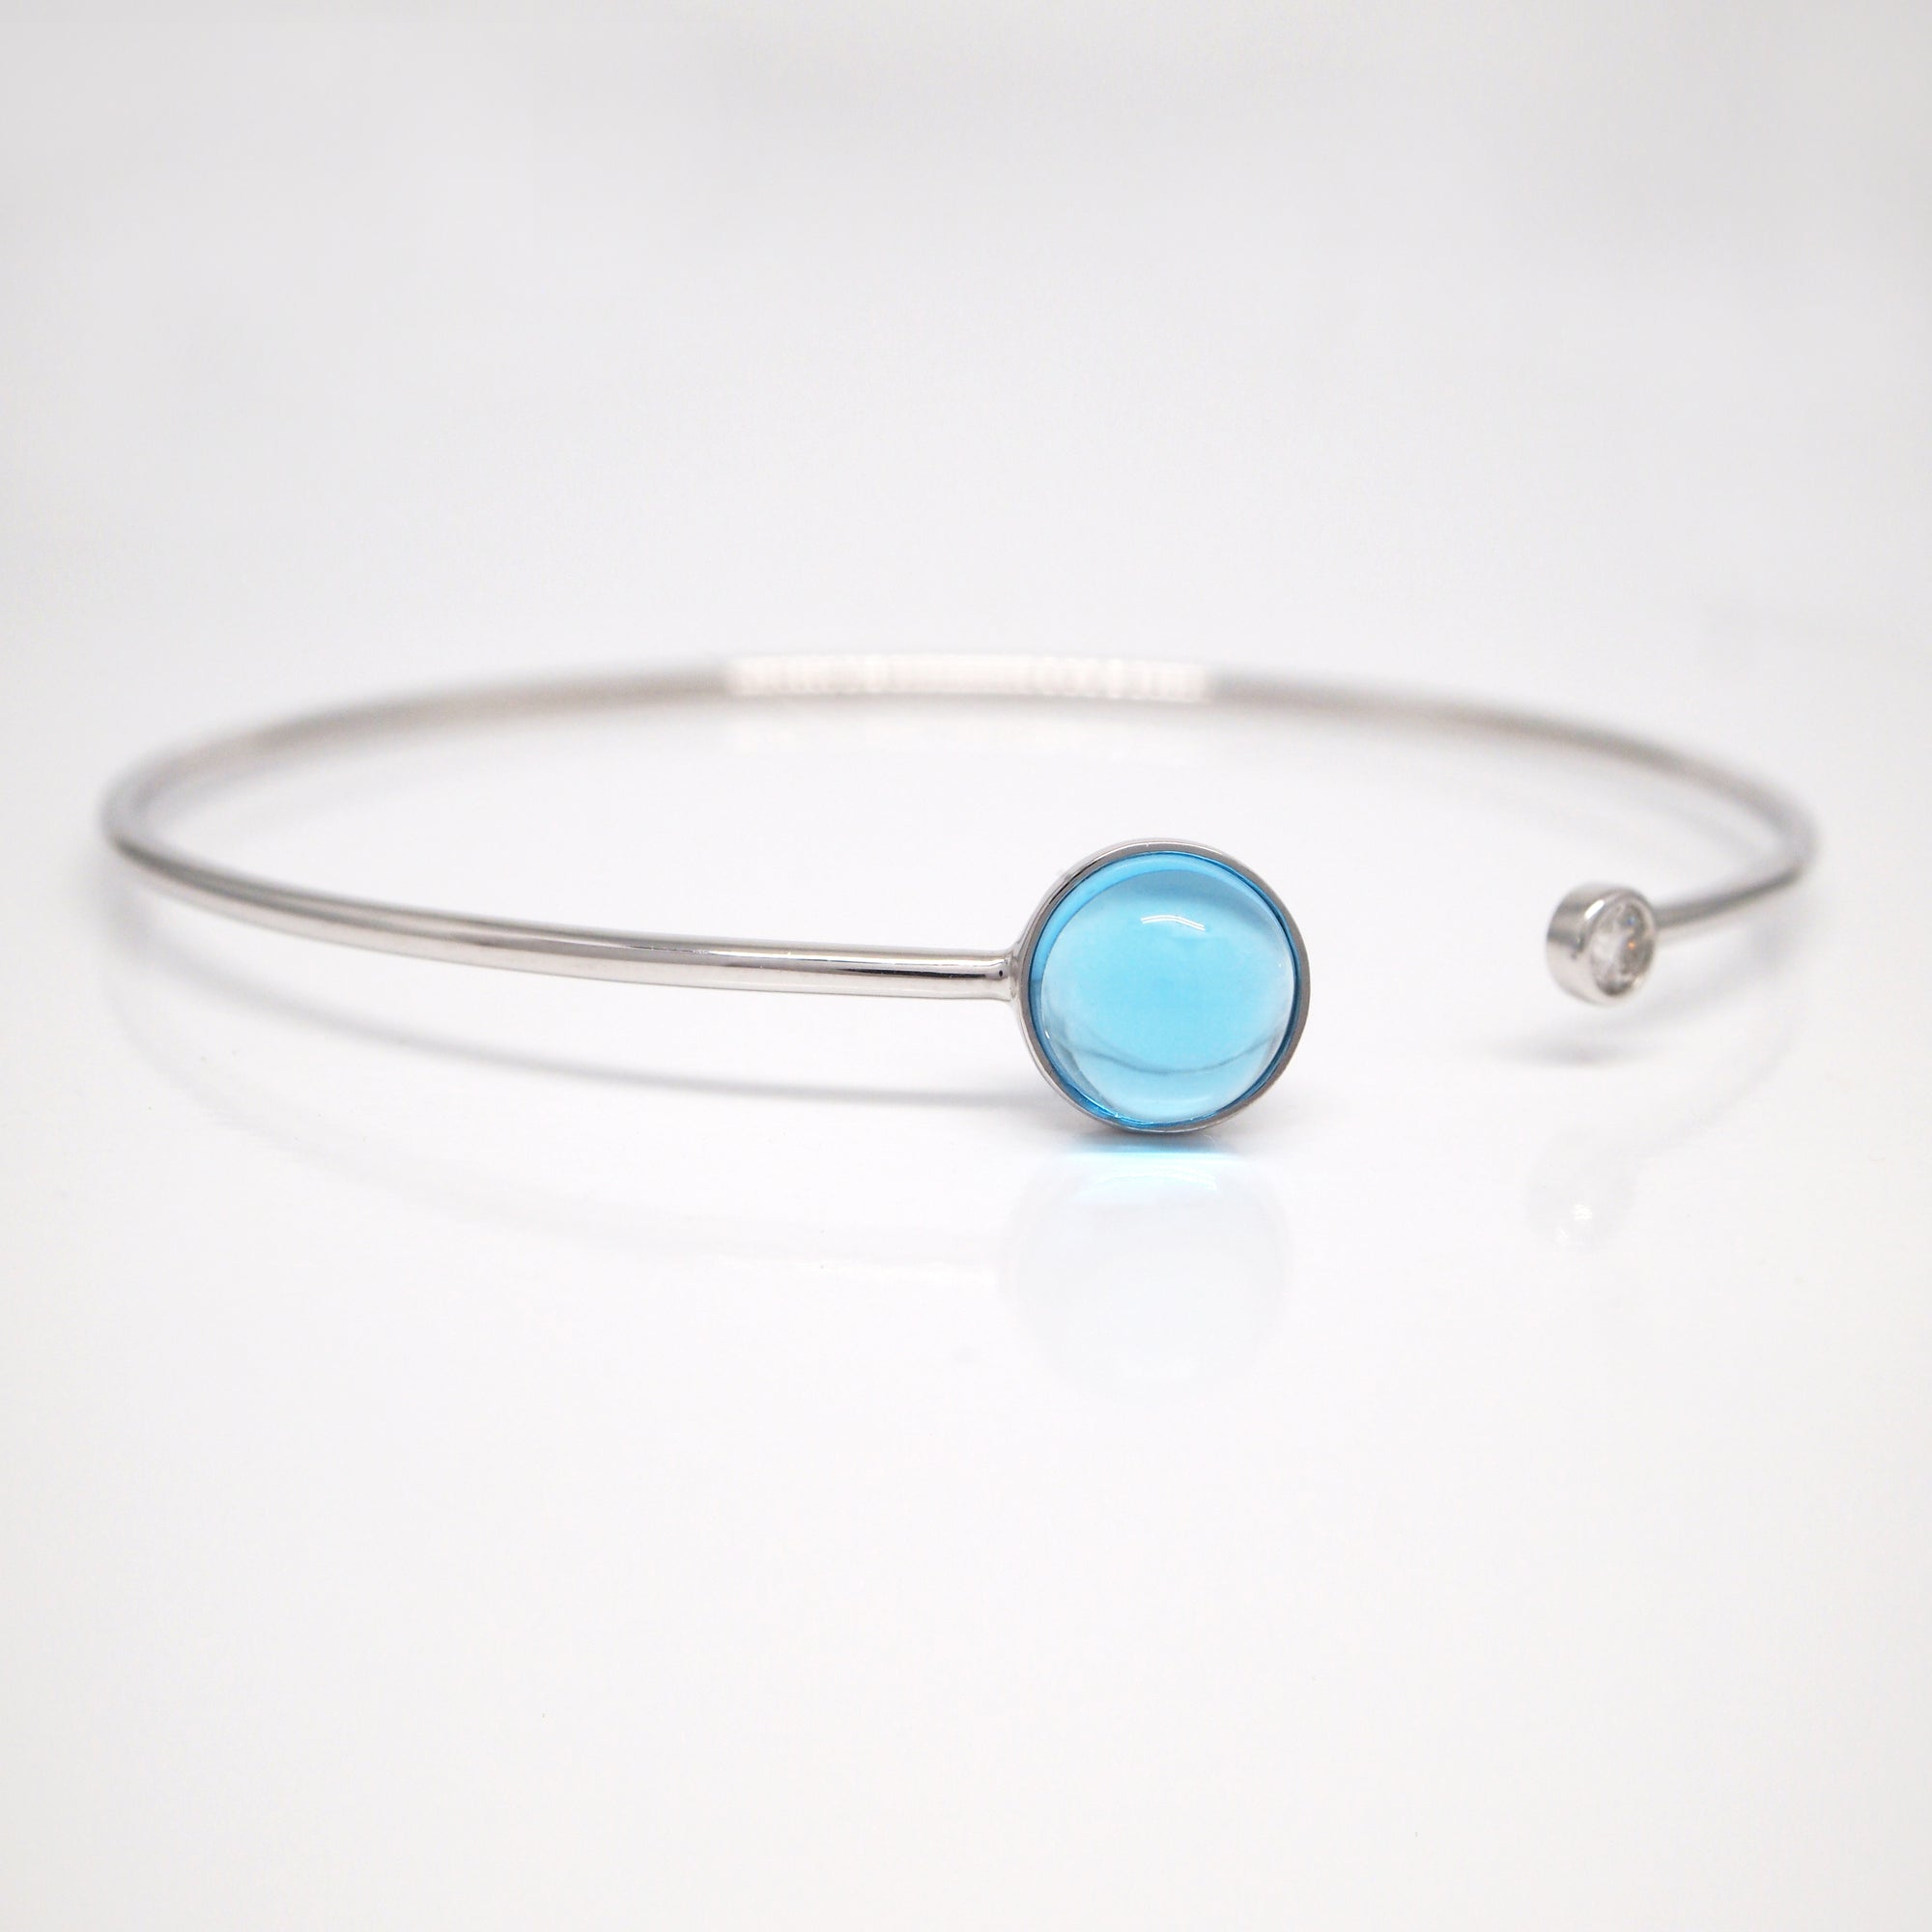 14K white gold bangle bracelet featuring an 8mm cabochon-cut blue topaz and a bezel-set brilliant-cut diamond